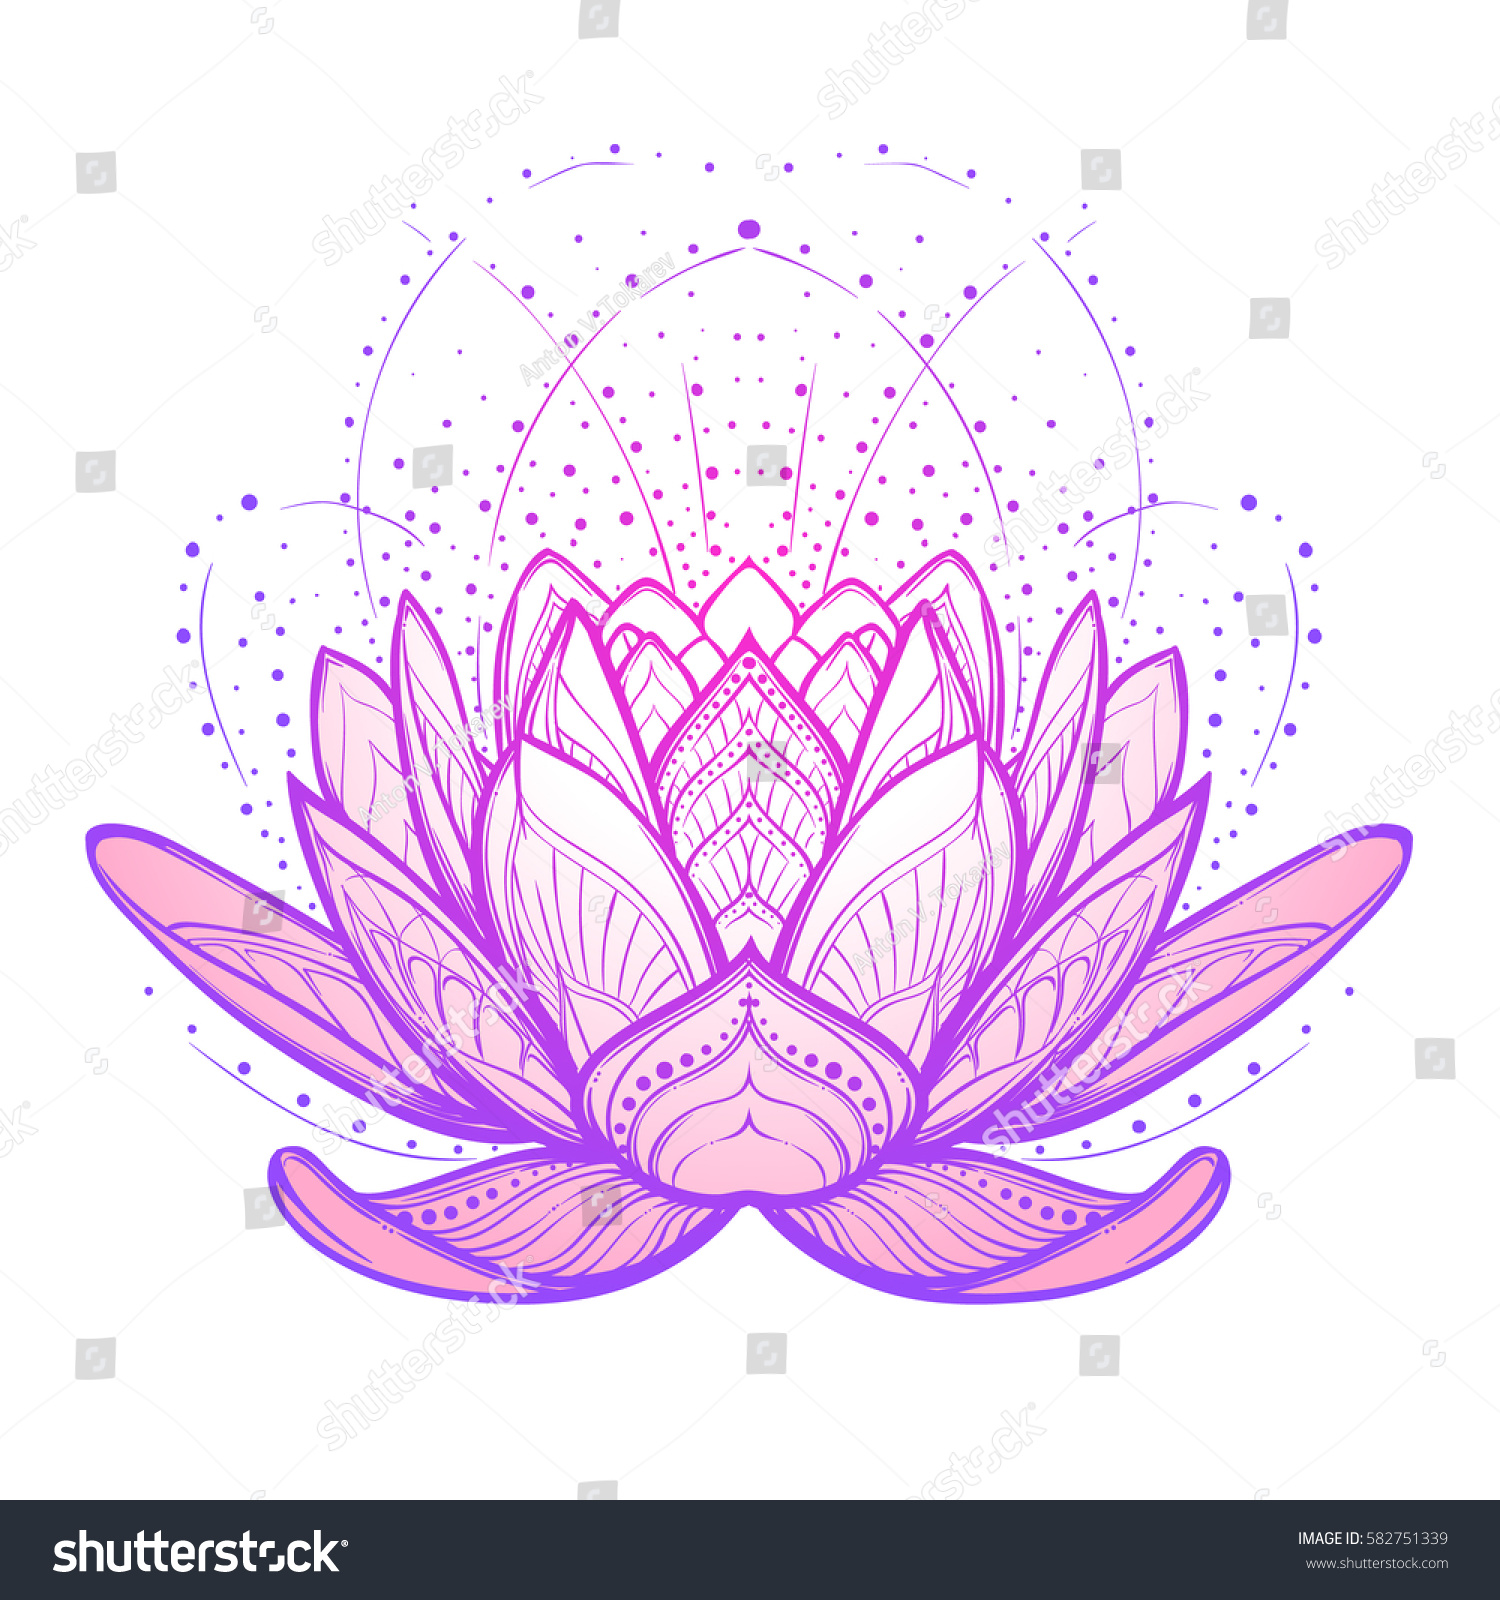 Lotus flower intricate stylized linear drawing stock vector royalty lotus flower intricate stylized linear drawing isolated on white background concept art for hindu izmirmasajfo